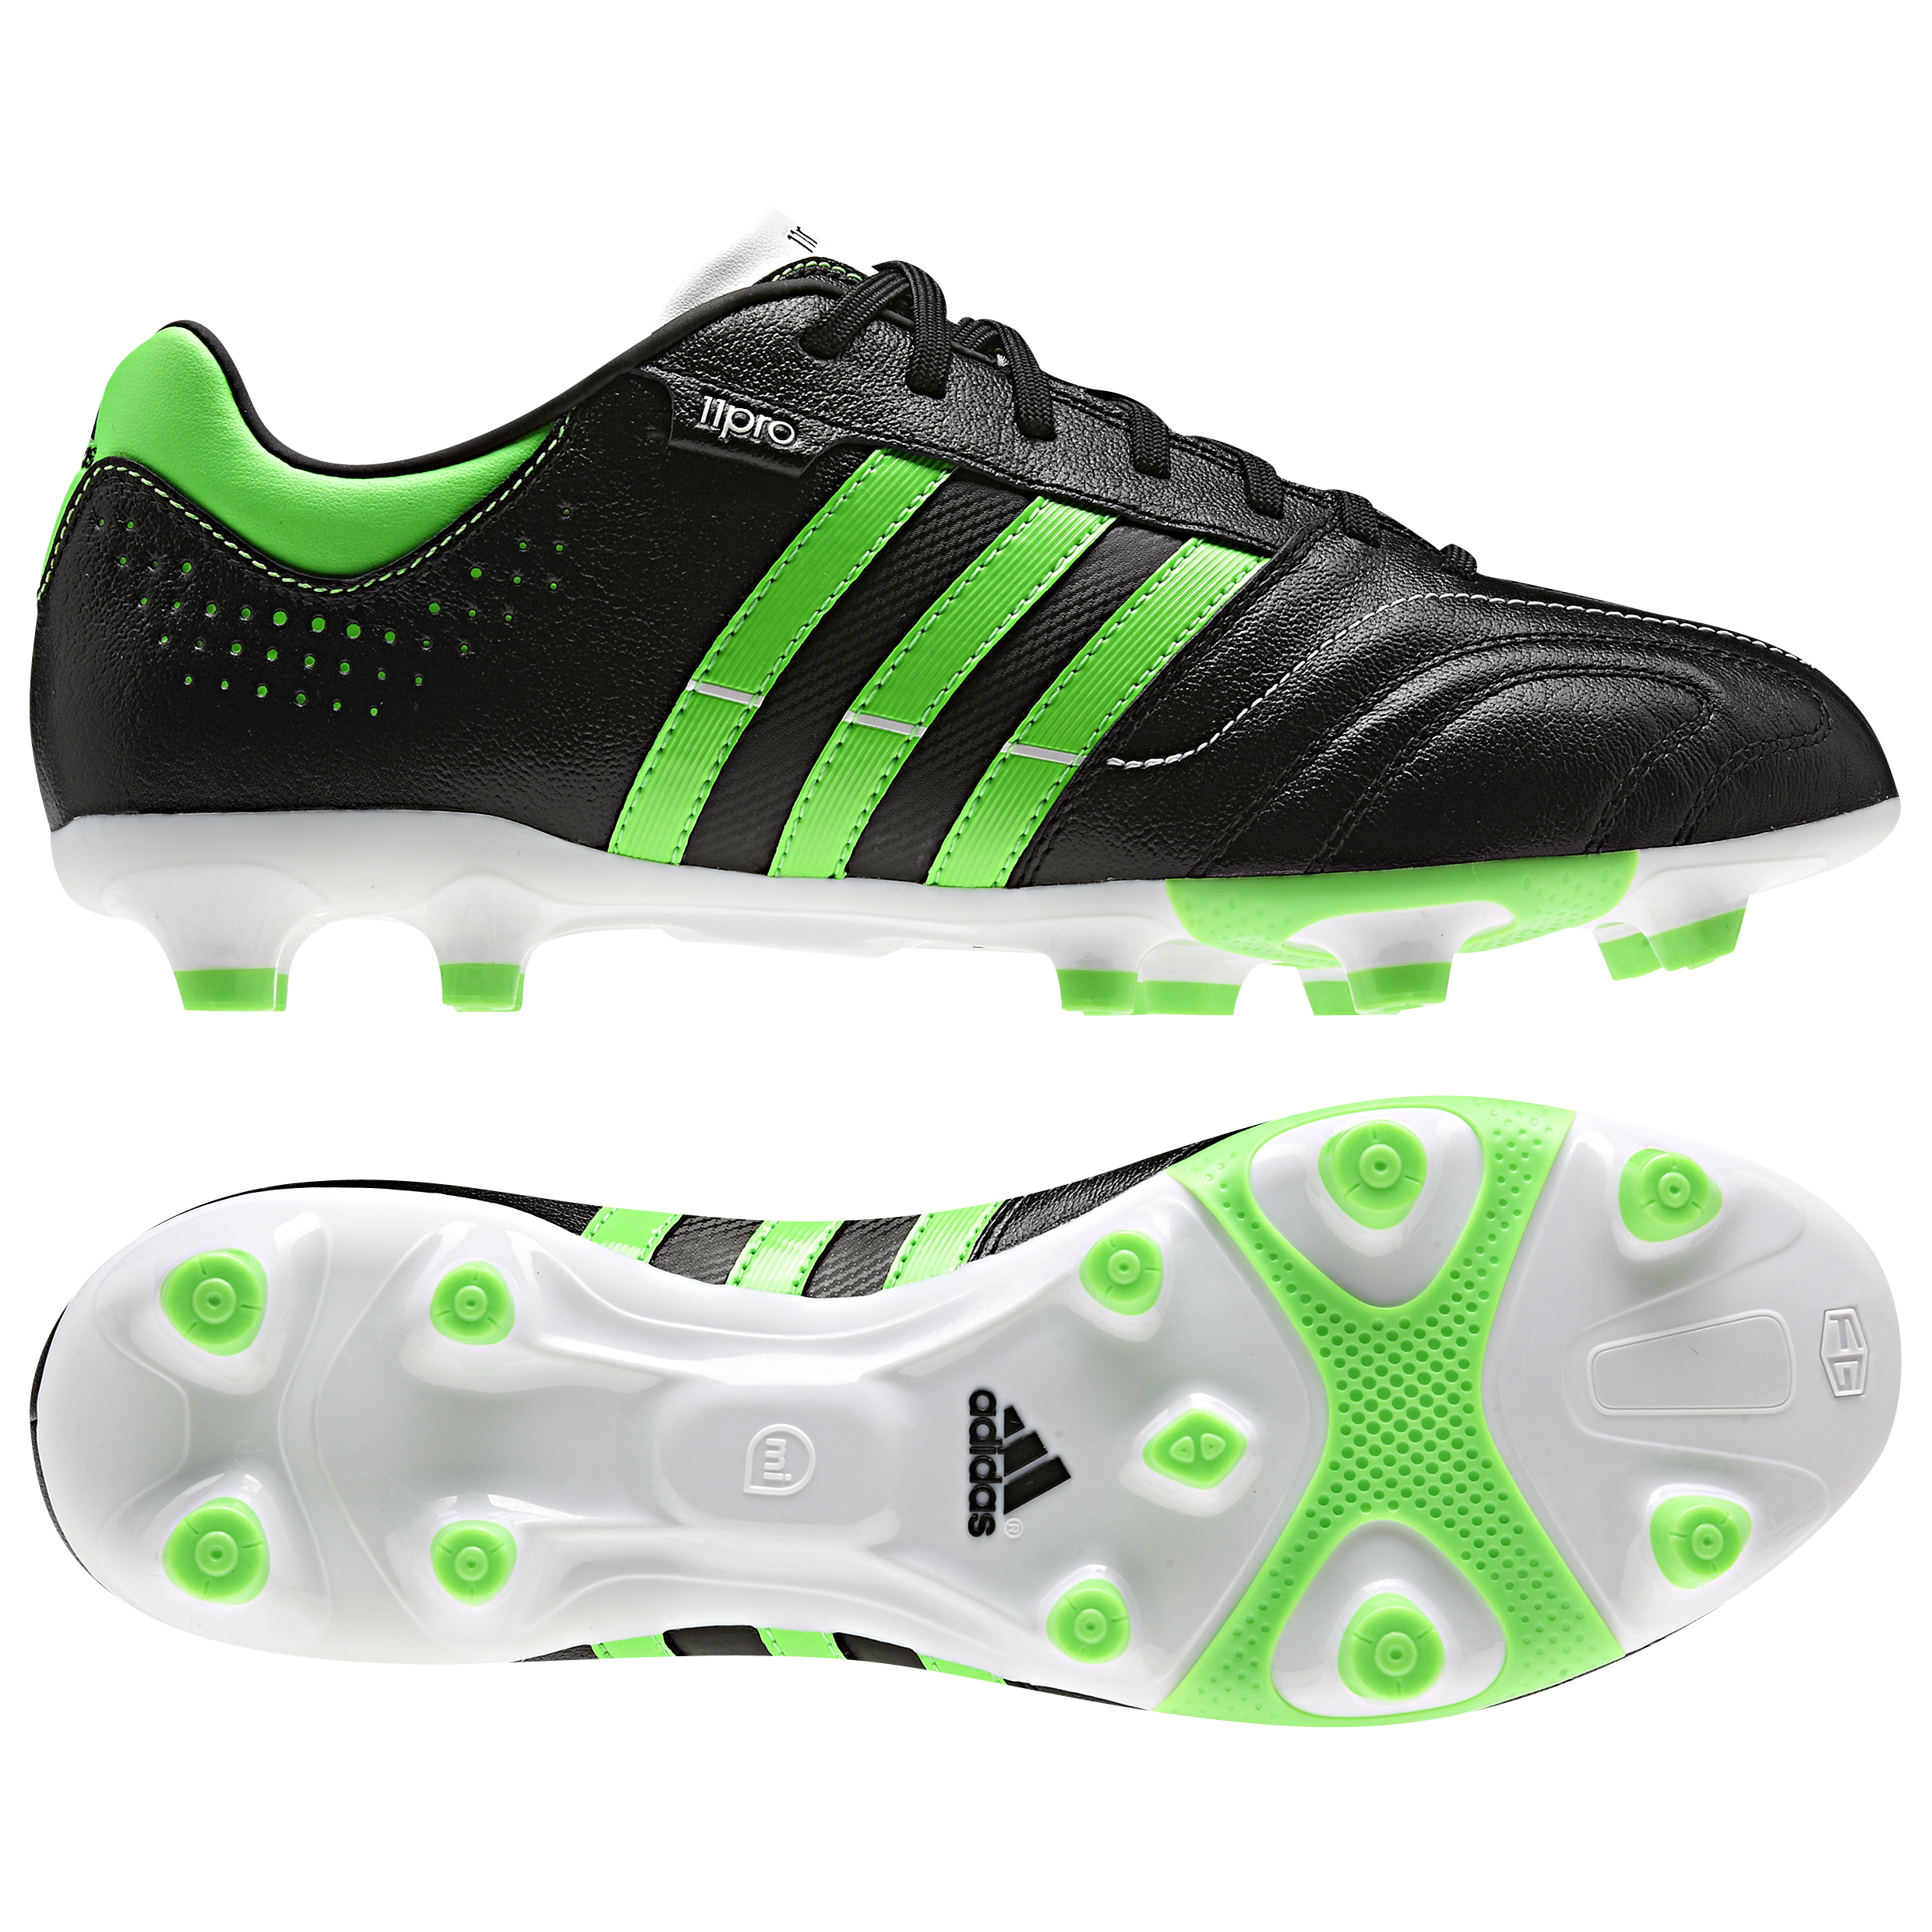 adidas AdiPure 11Nova TRX Firm Ground Football Boots - Black/Green Zest/Running White